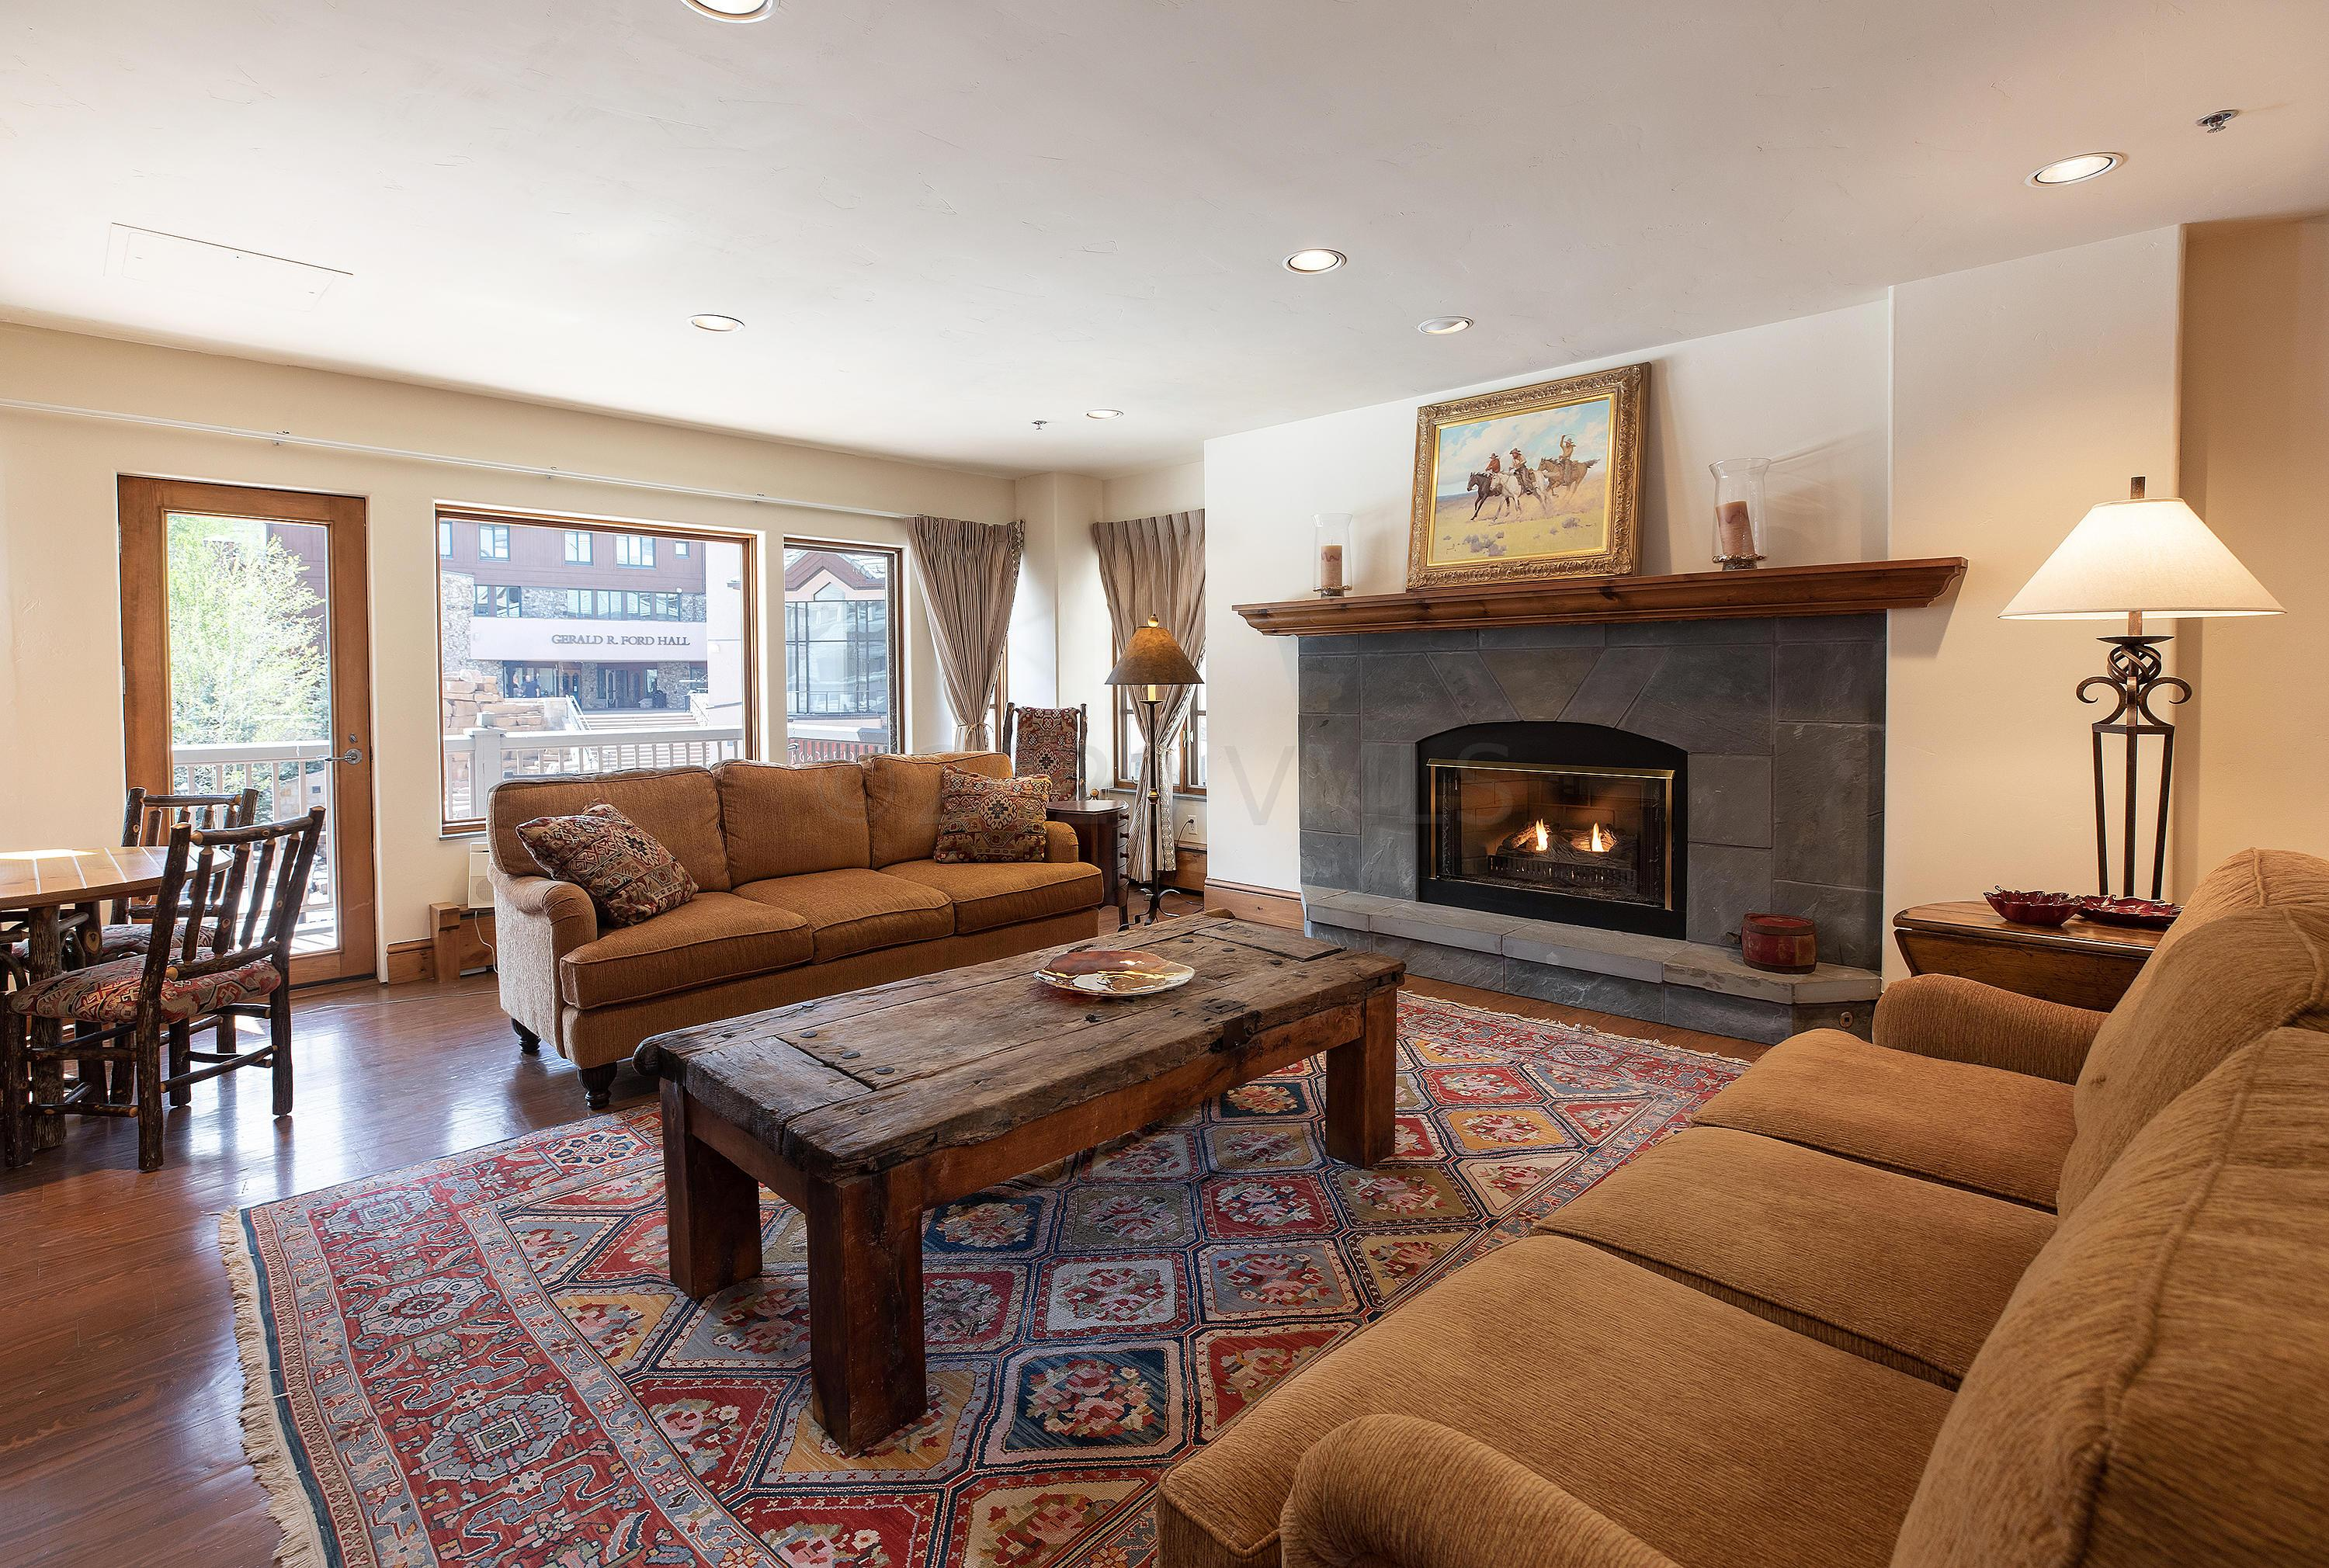 Located in the heart of Beaver Creek, this spacious residence is situated directly above the ice-skating rink with immediate access to all the Village amenities.  Restaurants, shops, ski school and the acclaimed Vilar Center venue can all easily be accessed within minutes. Easy ski-in/ski-out access right out the back of the building to the Elk Horn Chairlift as well as quick access to the park along the creek complete with a children's playground and picnic area. Listen to the soothing sounds of the year-round 'Beaver Creek' out all of the bedrooms. Private balcony to savor the southerly views and watch the highly frequented fireworks from your deck. Additional amenities include; underground heated parking, garage storage and 2 additional closet storage spaces, private and secure elevator access direct to the garage or village level. Recently painted and new carpet installed. Sold furnished.